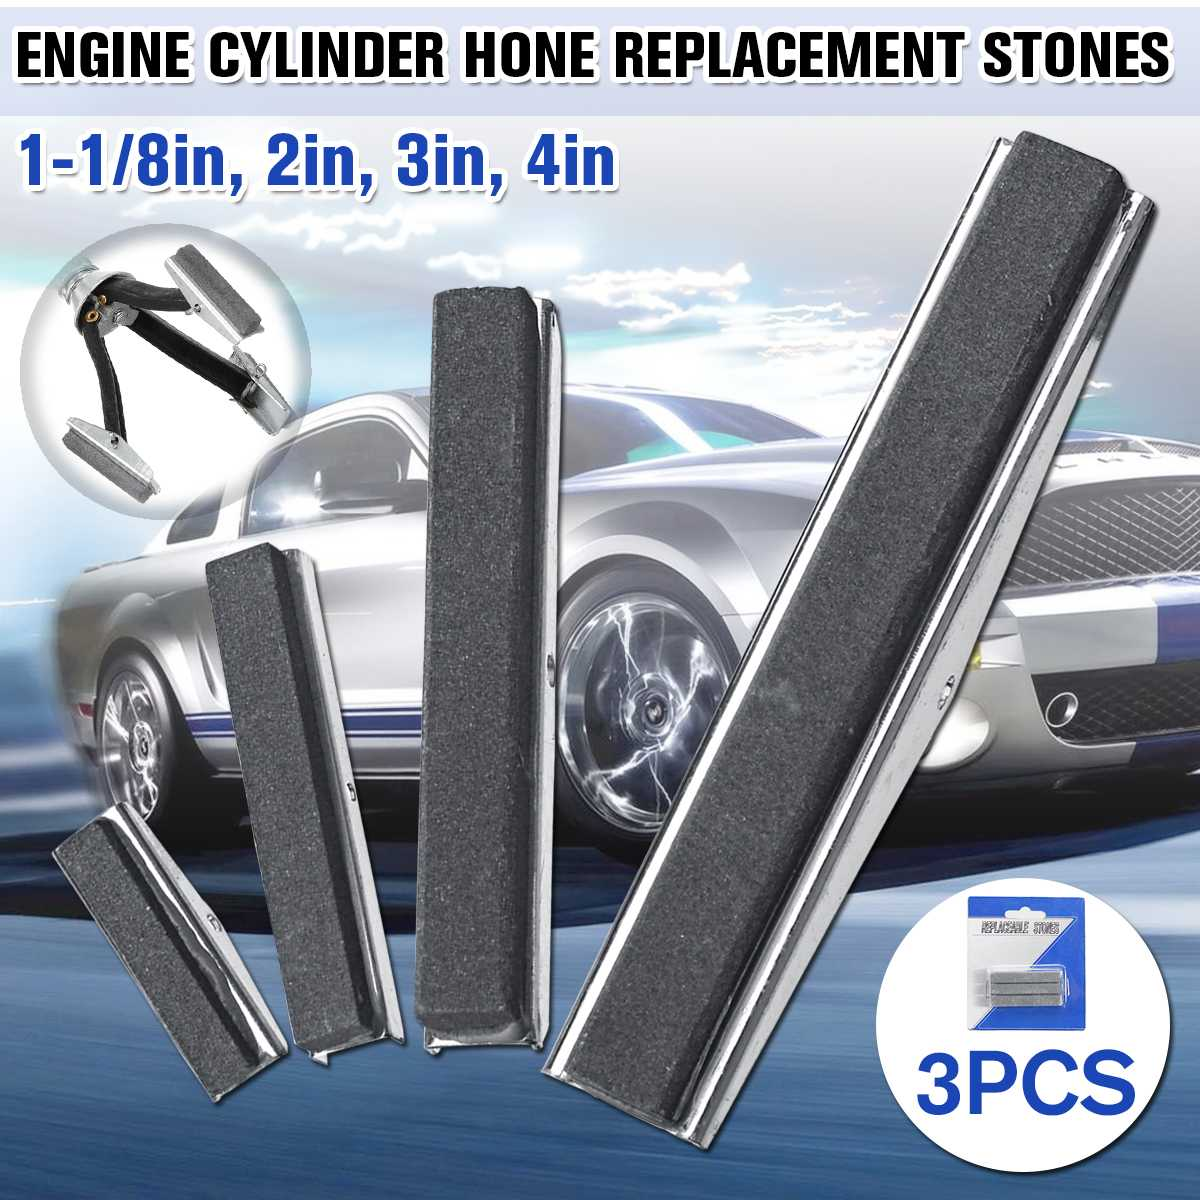 3pcs/set Hone Replaceable Stones For Brake Piston Engine Cylinder Hone Tool Replacement Stone 1.125/2/3/4inch 4 Size